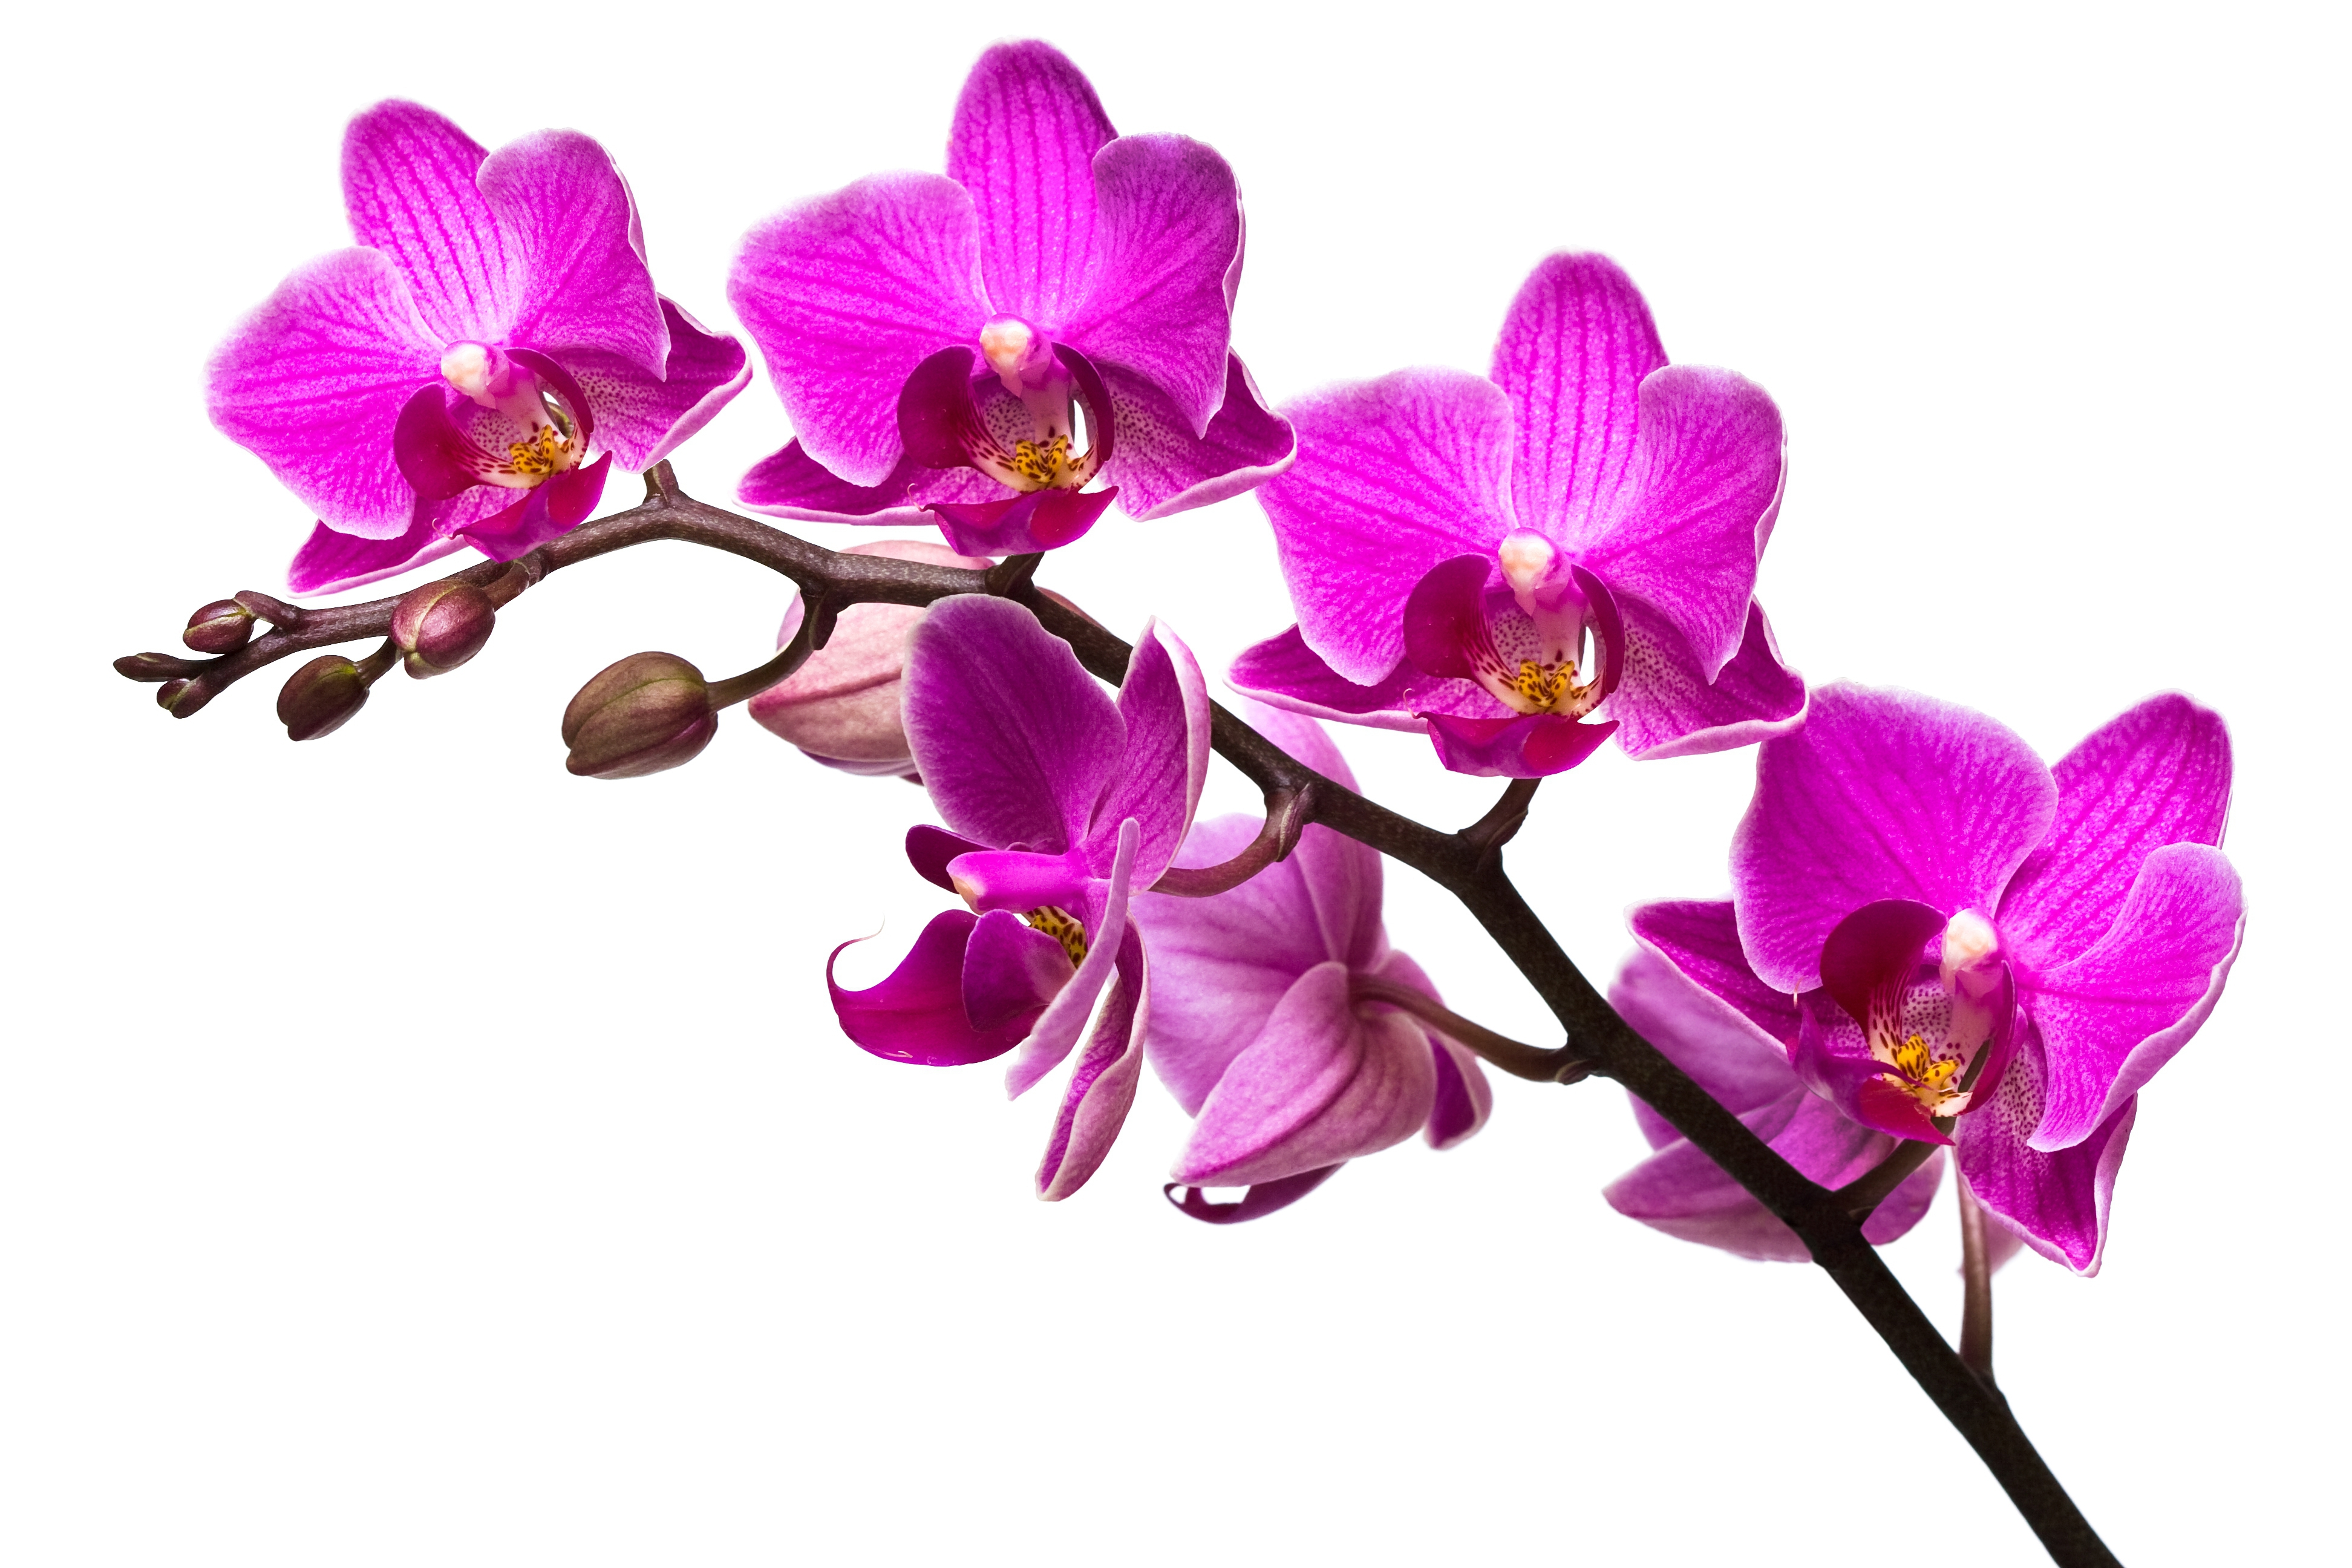 Orchid wallpapers images photos pictures backgrounds - White orchid flowers desktop wallpapers ...